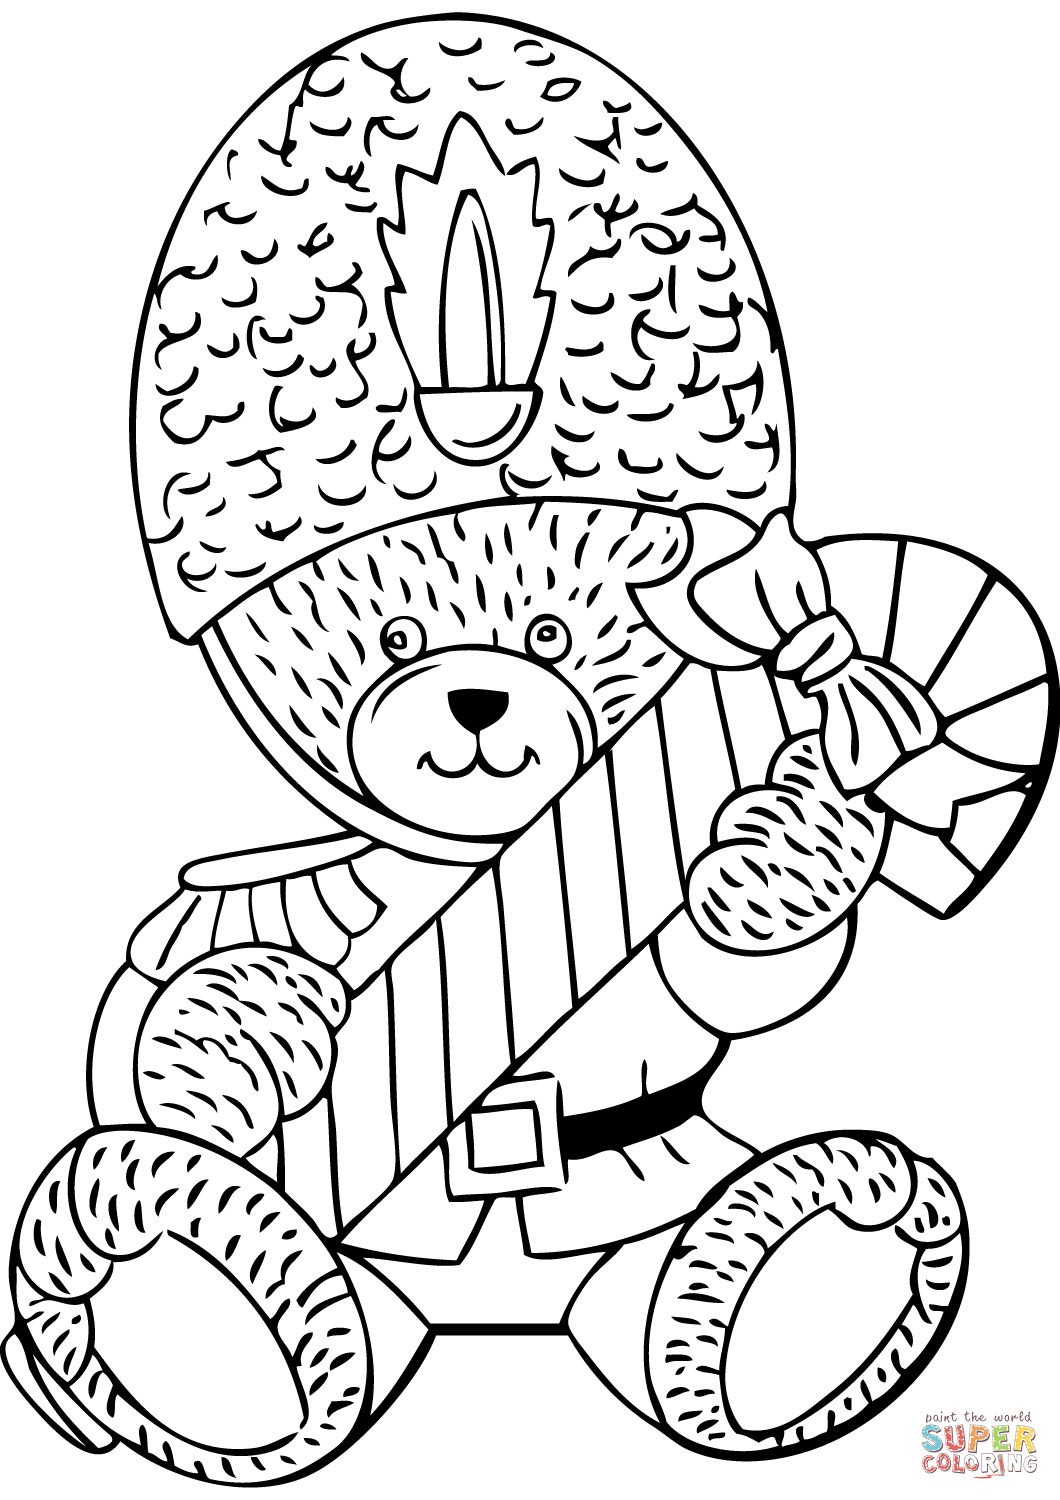 Teddy Bear With Candy Cane Coloring Page Free Printable Coloring